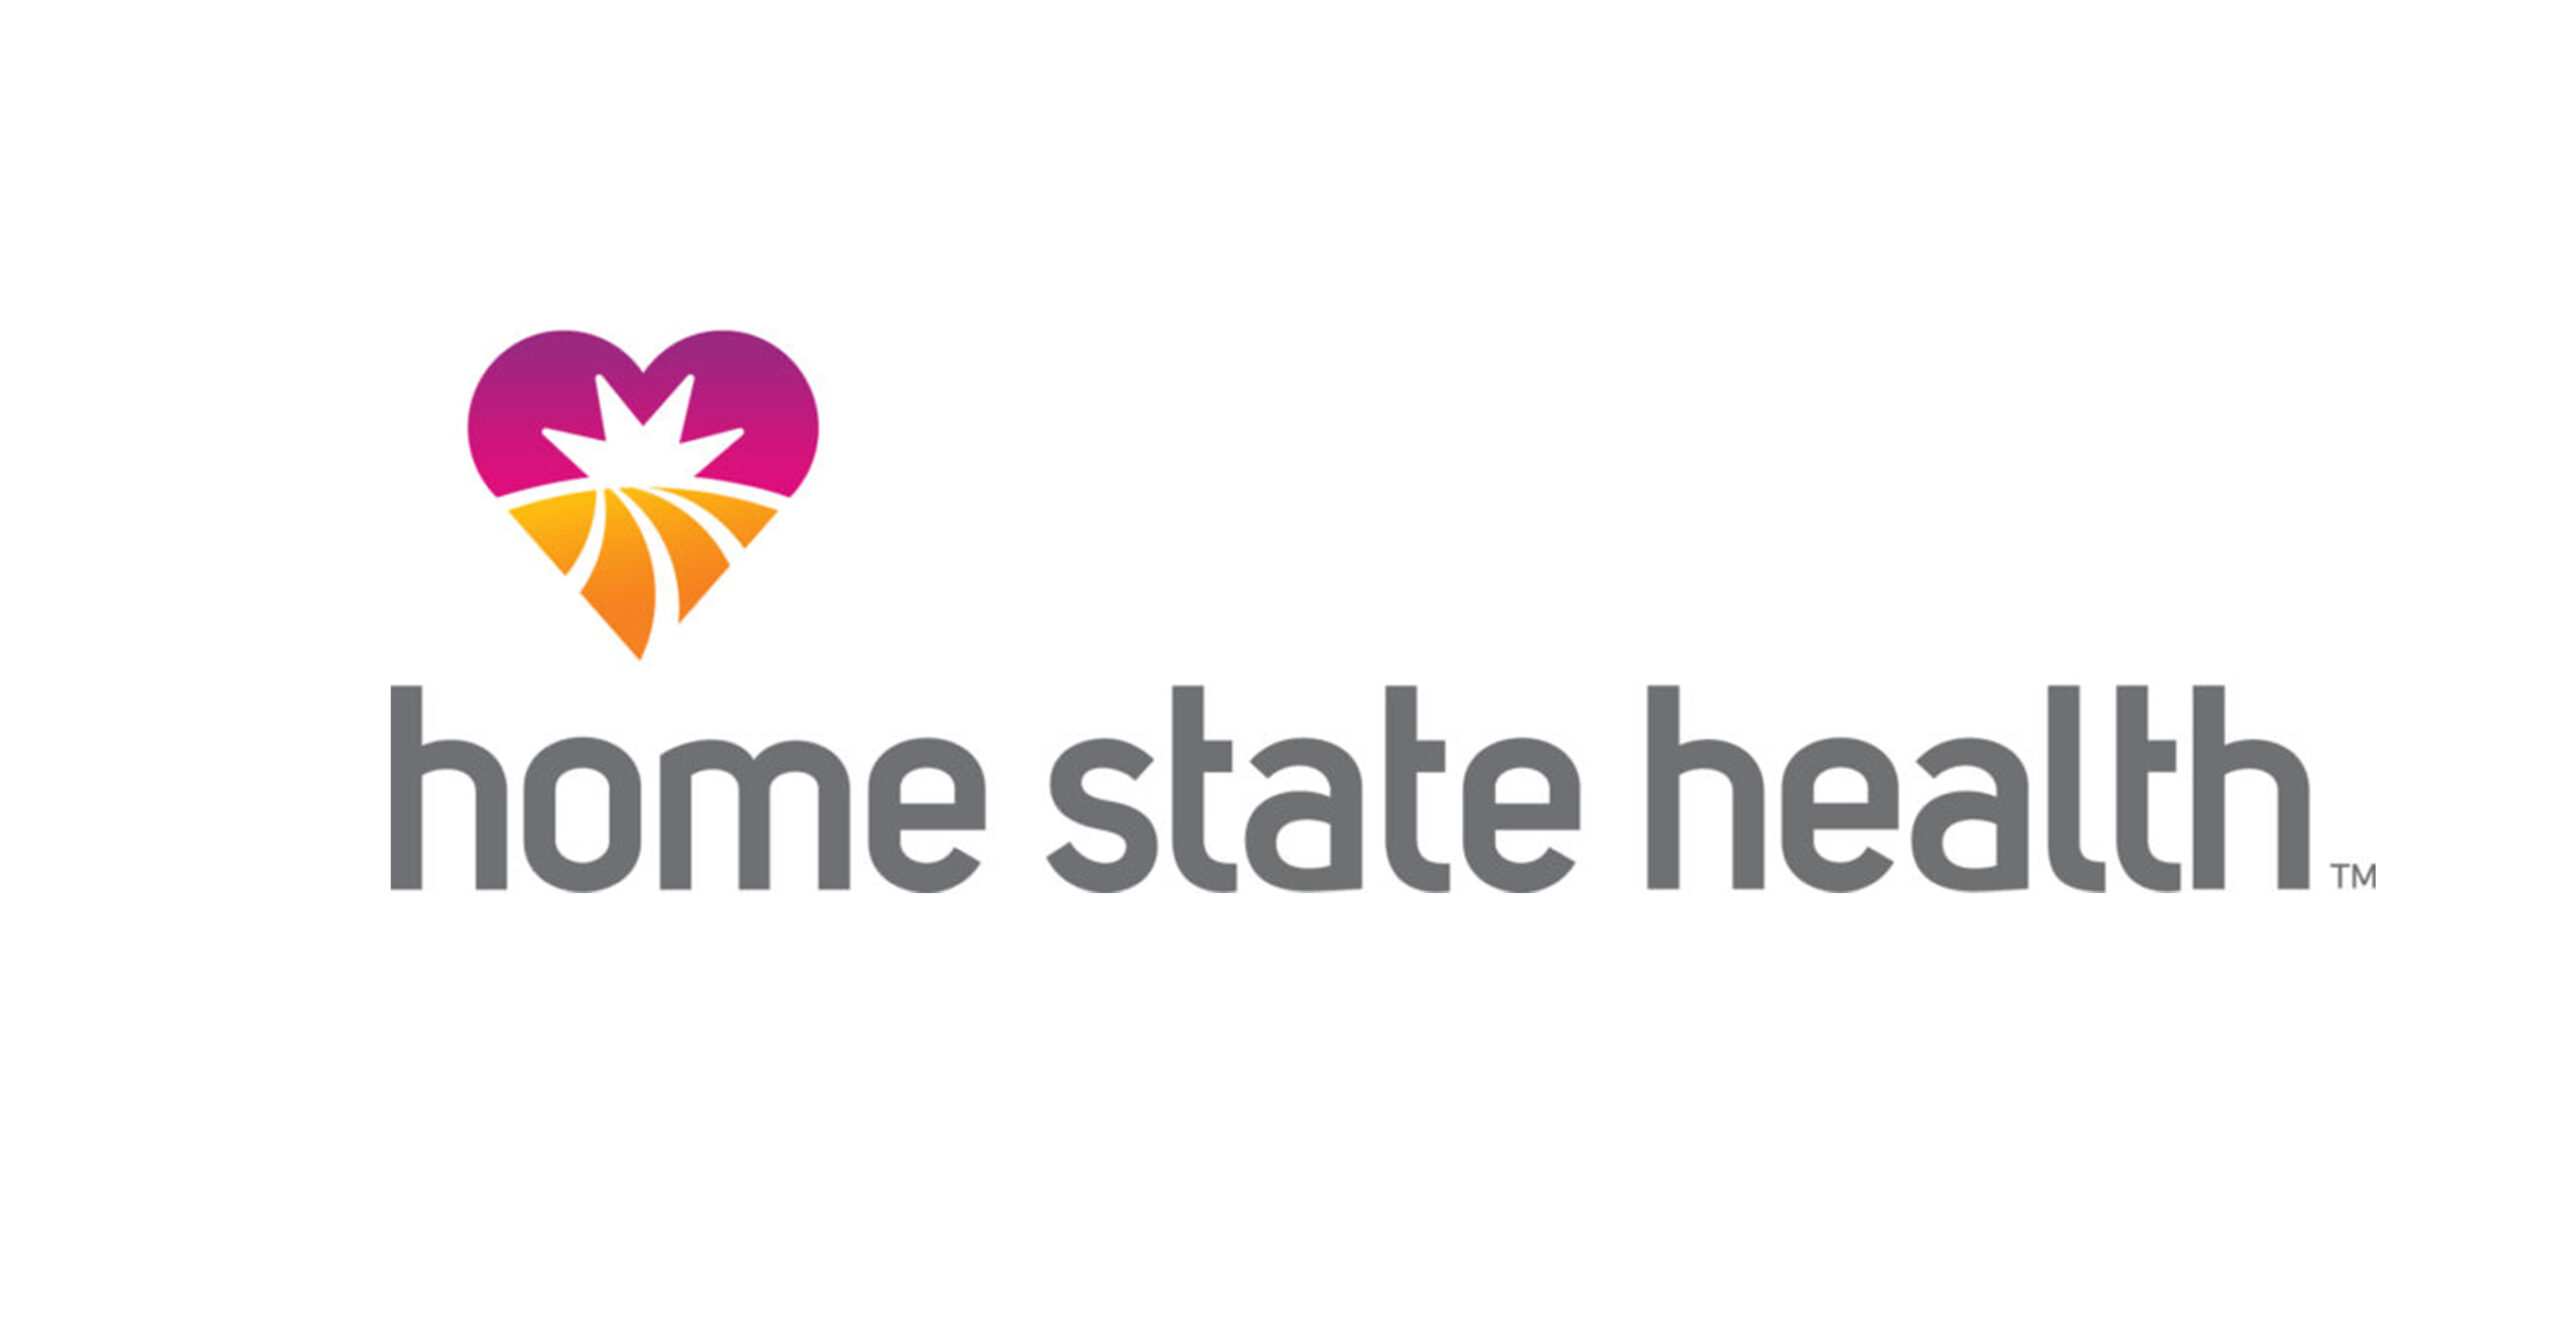 HOME-STATE-HEALTH2-scaled.jpg